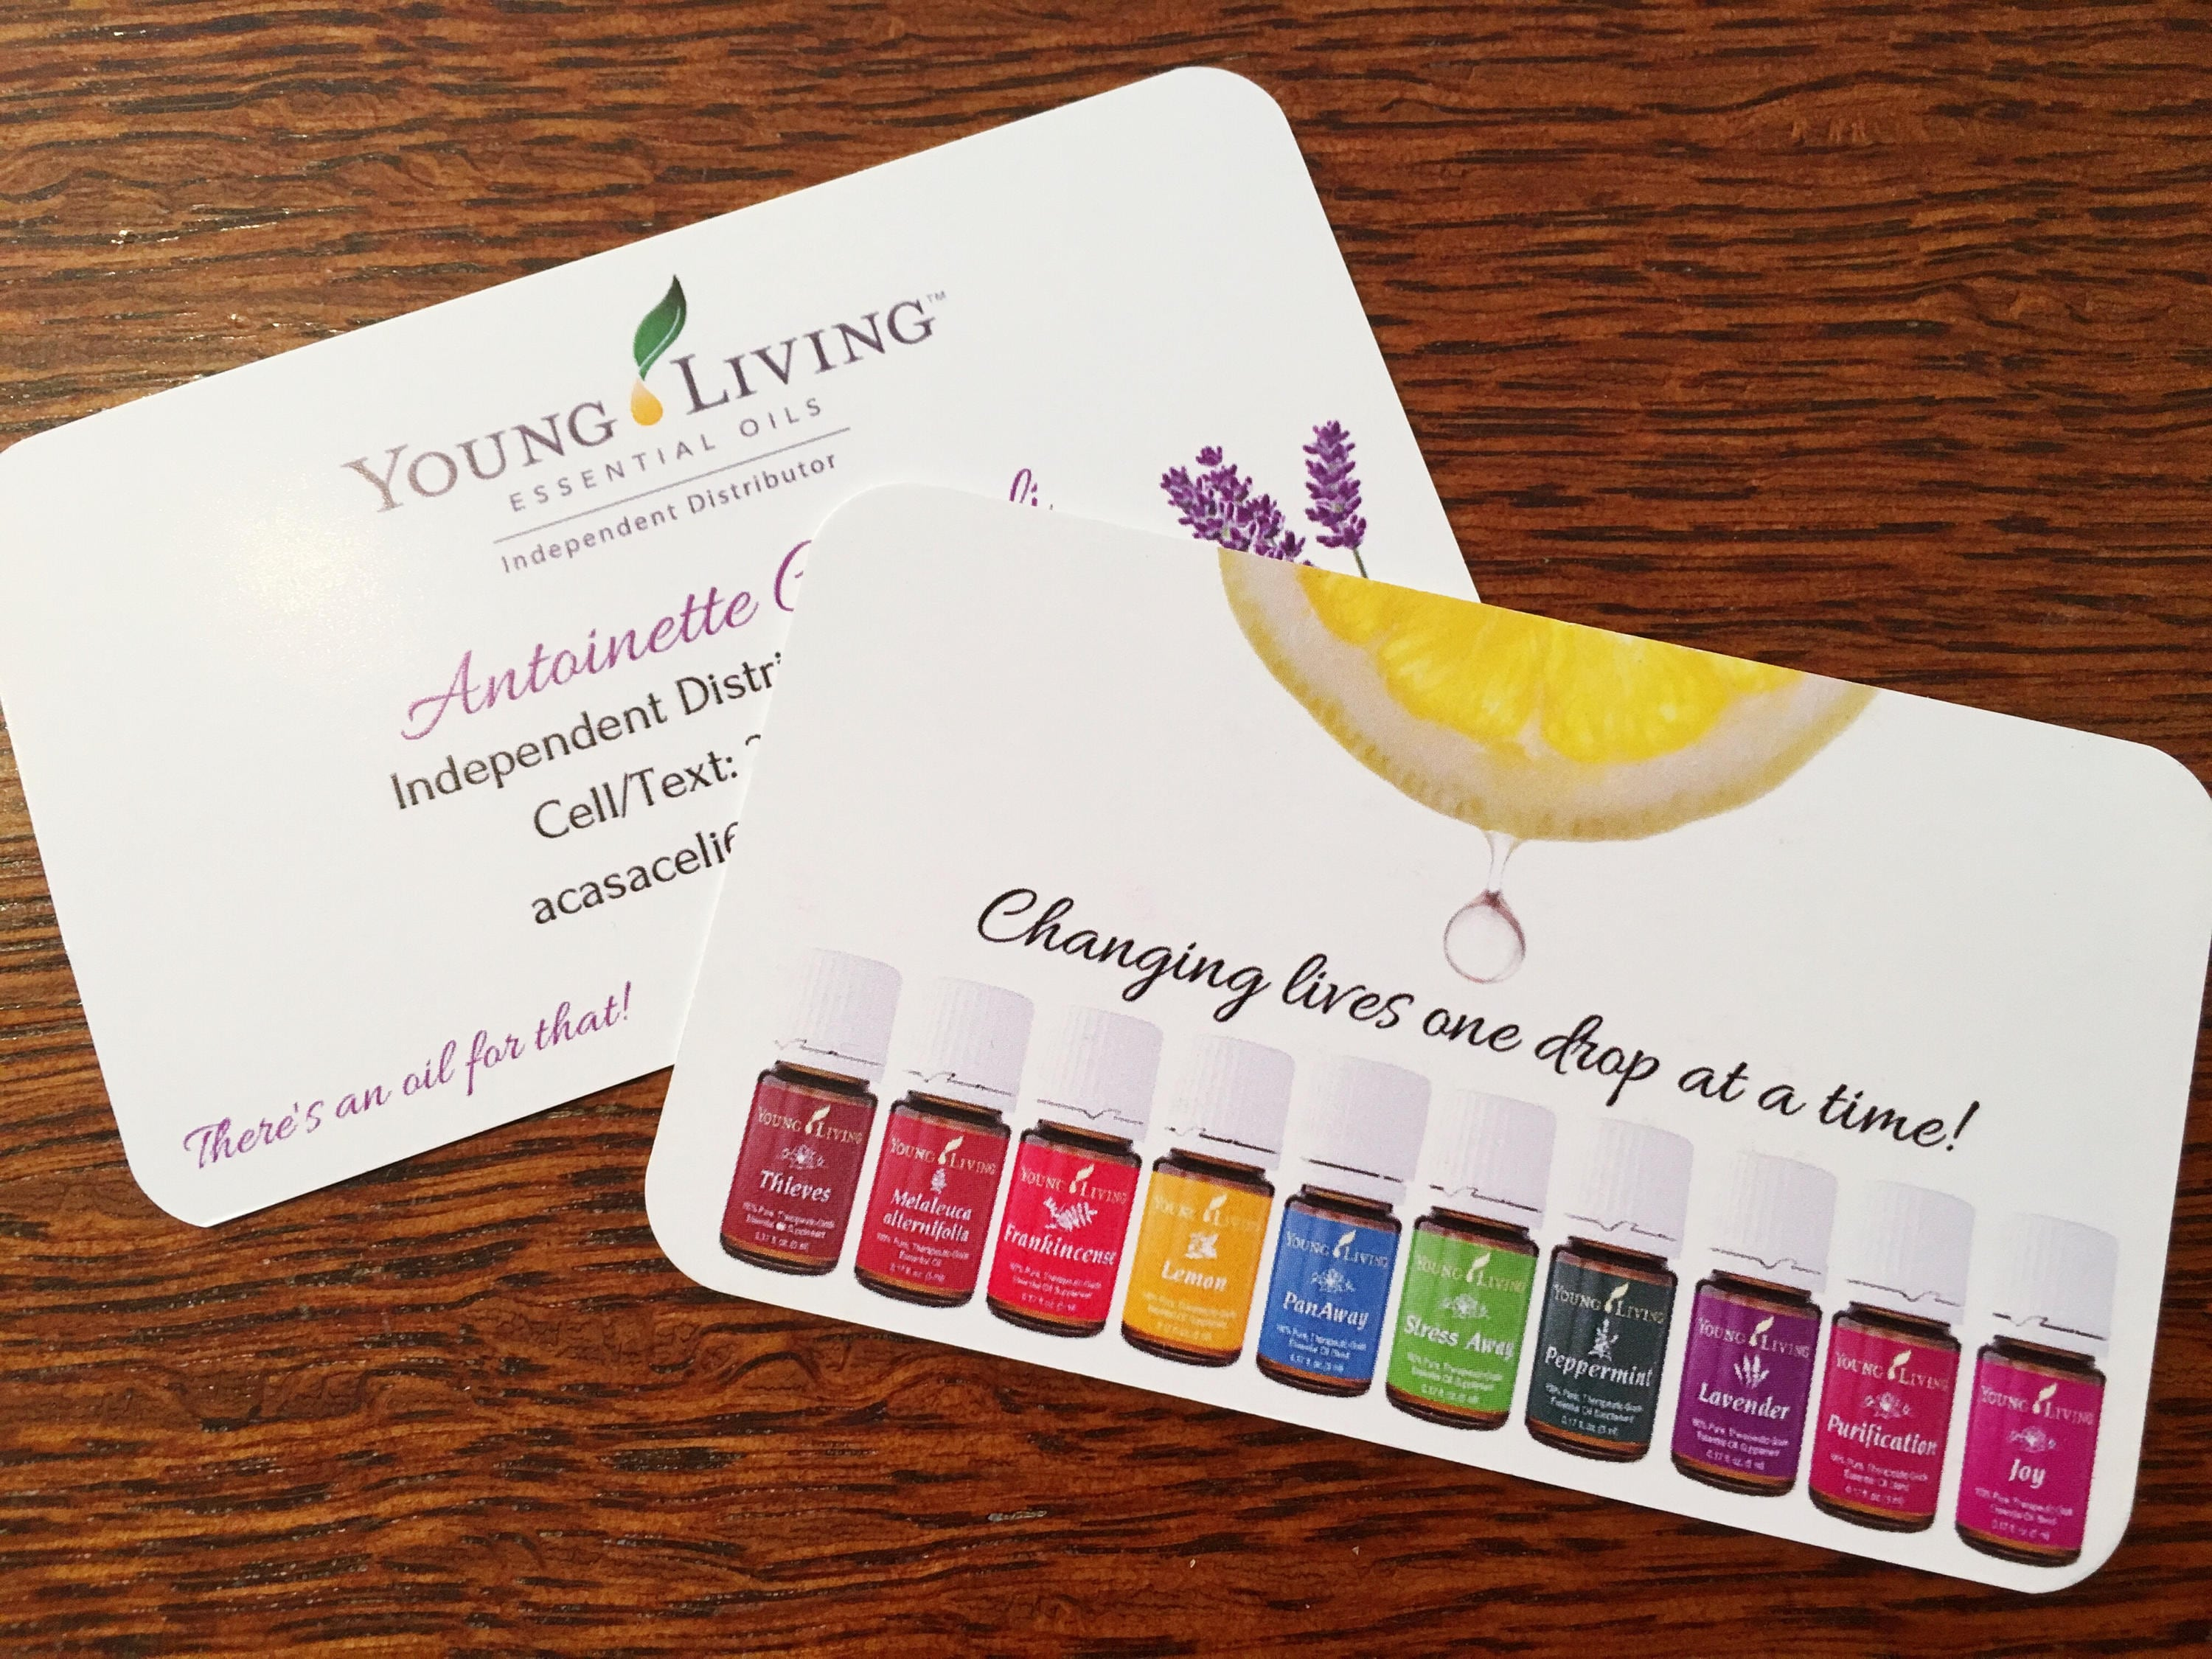 Essential Oil Business Card Template for Independent